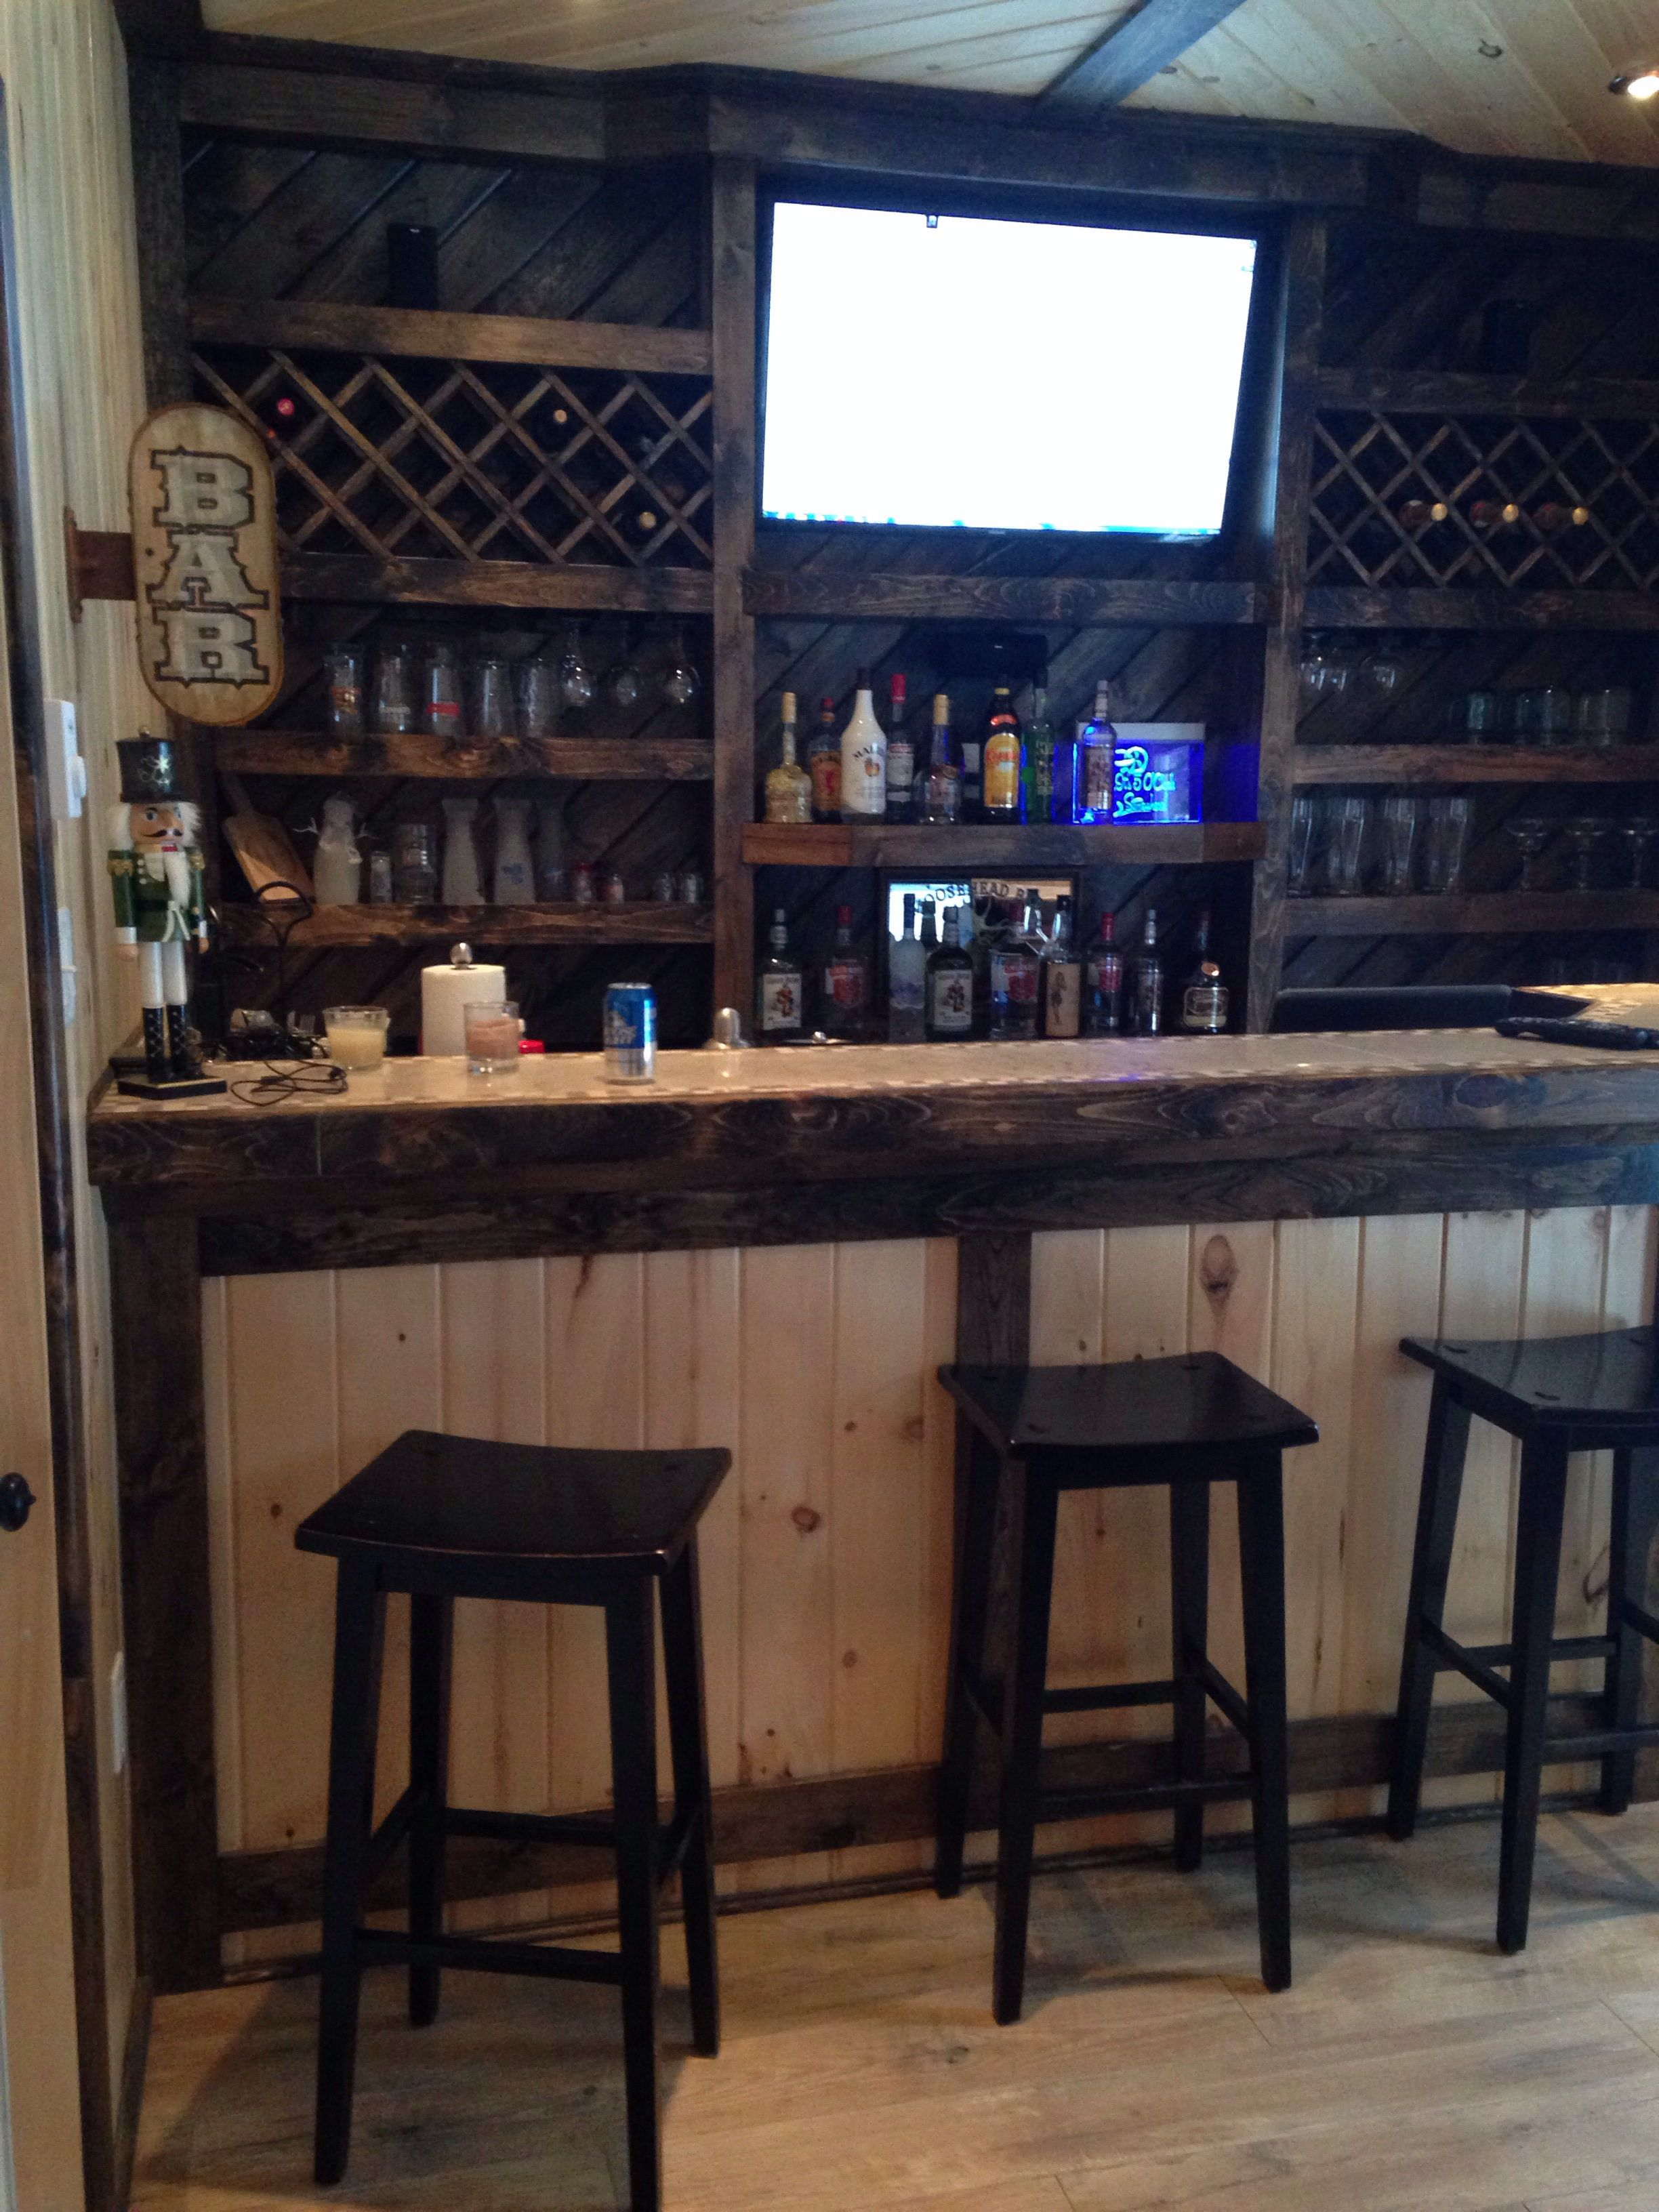 Garage Bar Idea For The Hubbys Man Cave Like This But How Would You Keep